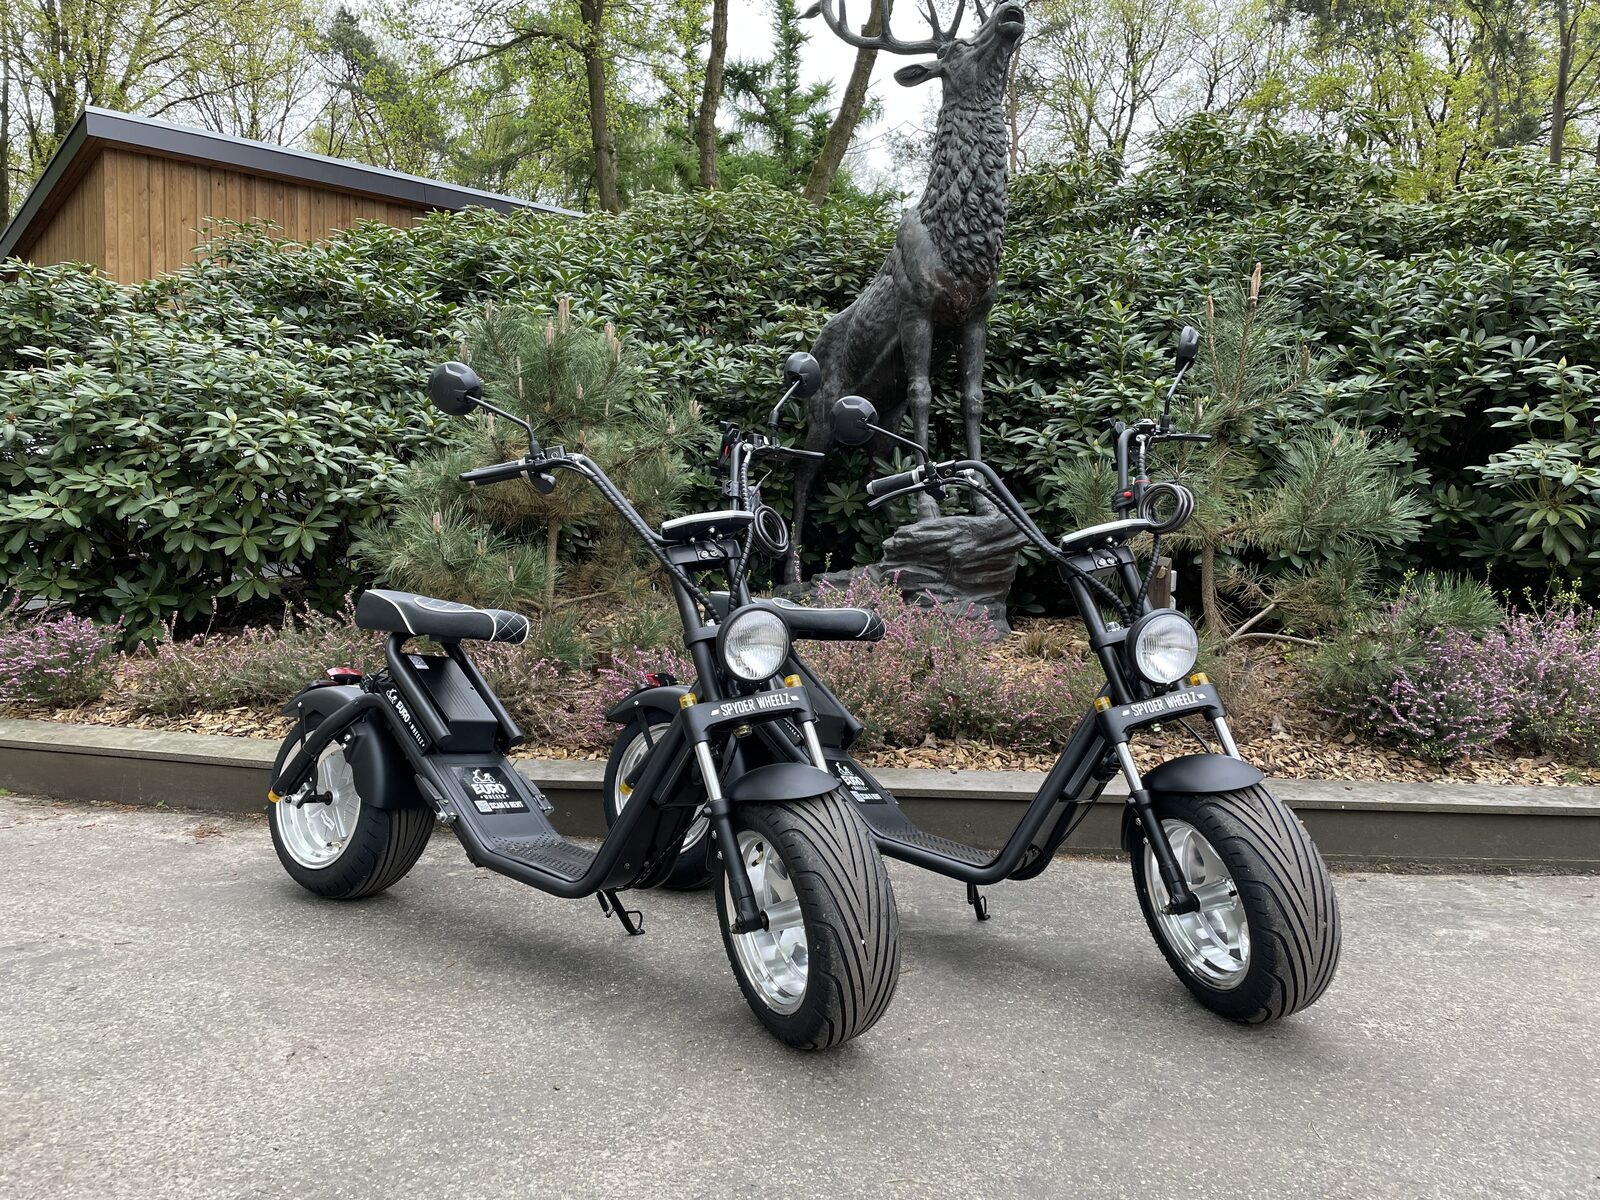 Renting E-Choppers